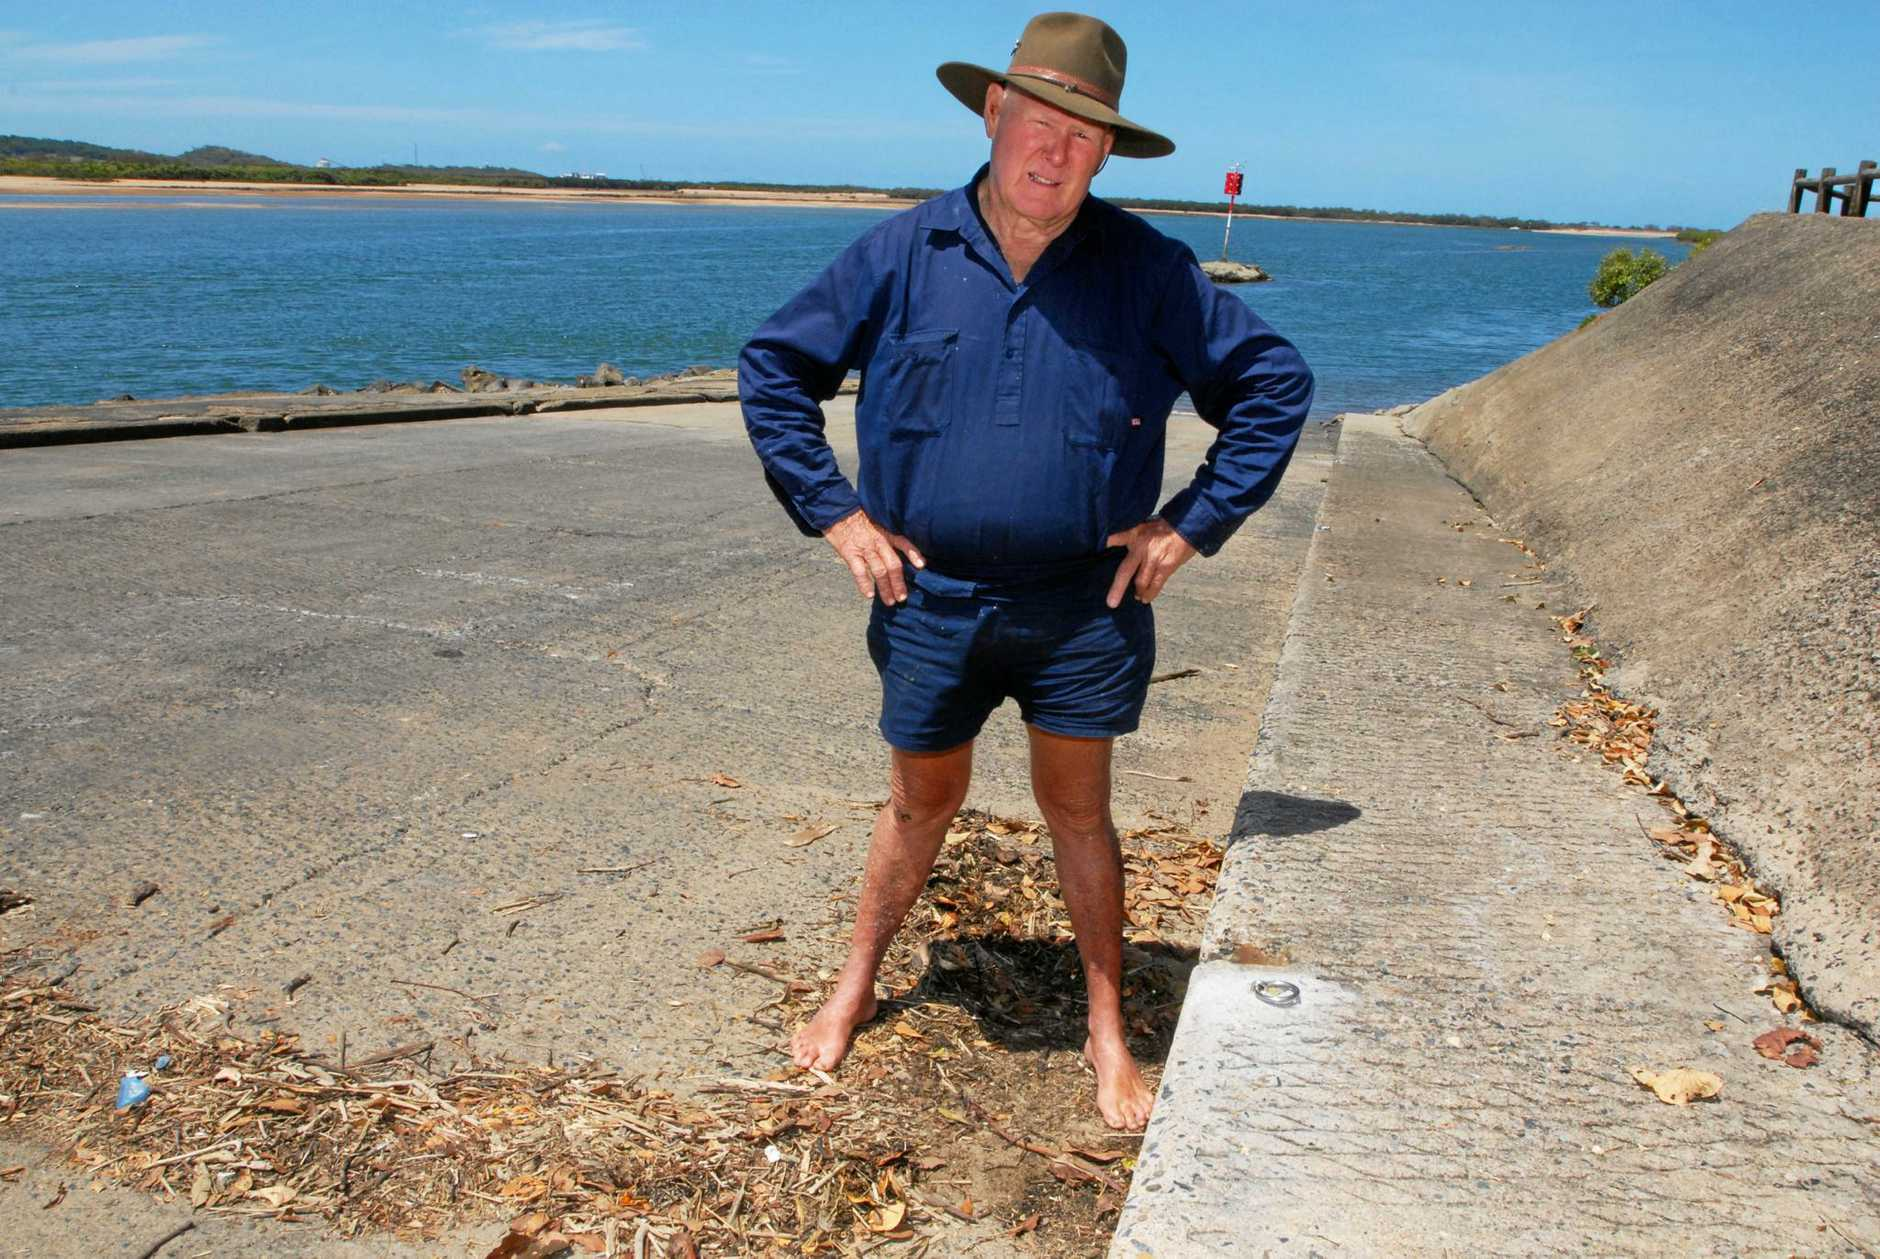 Ron Meng, pictured at the ramp in 2011, has long campaigned for improvements to the Pioneer River boat ramp.